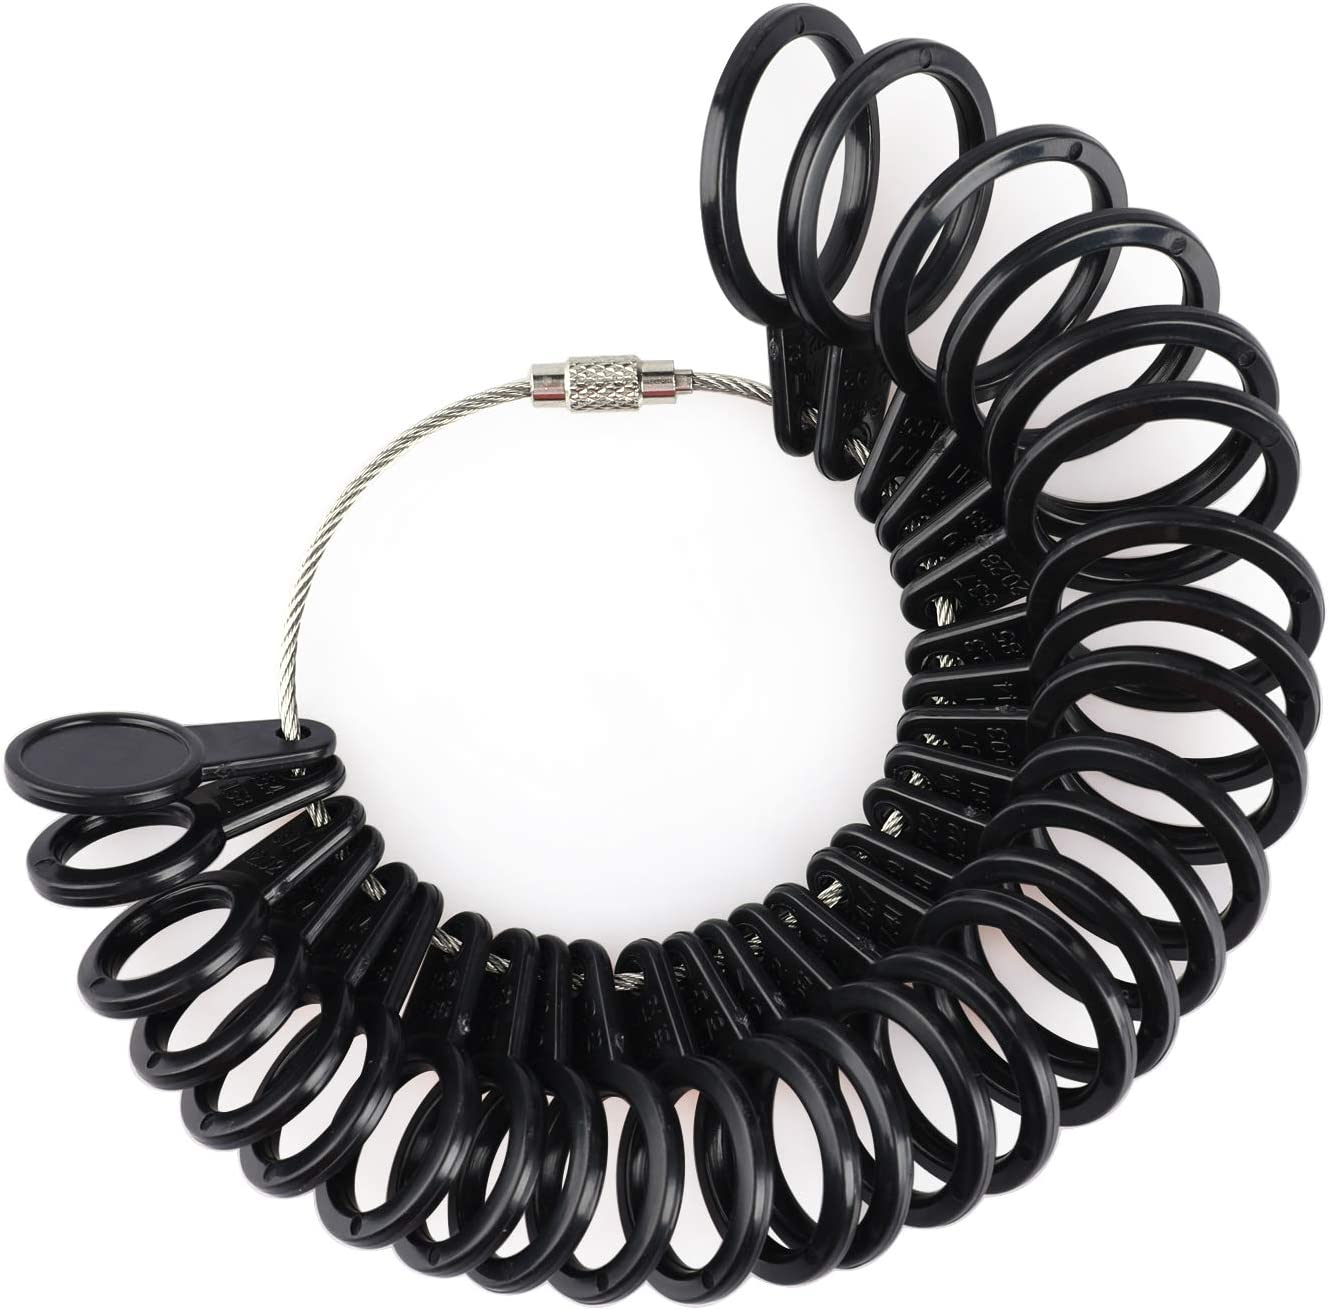 Pupuka Ring Sizer US Size 1-13 Half with OFFicial mail order Black Time sale Meas Plastic